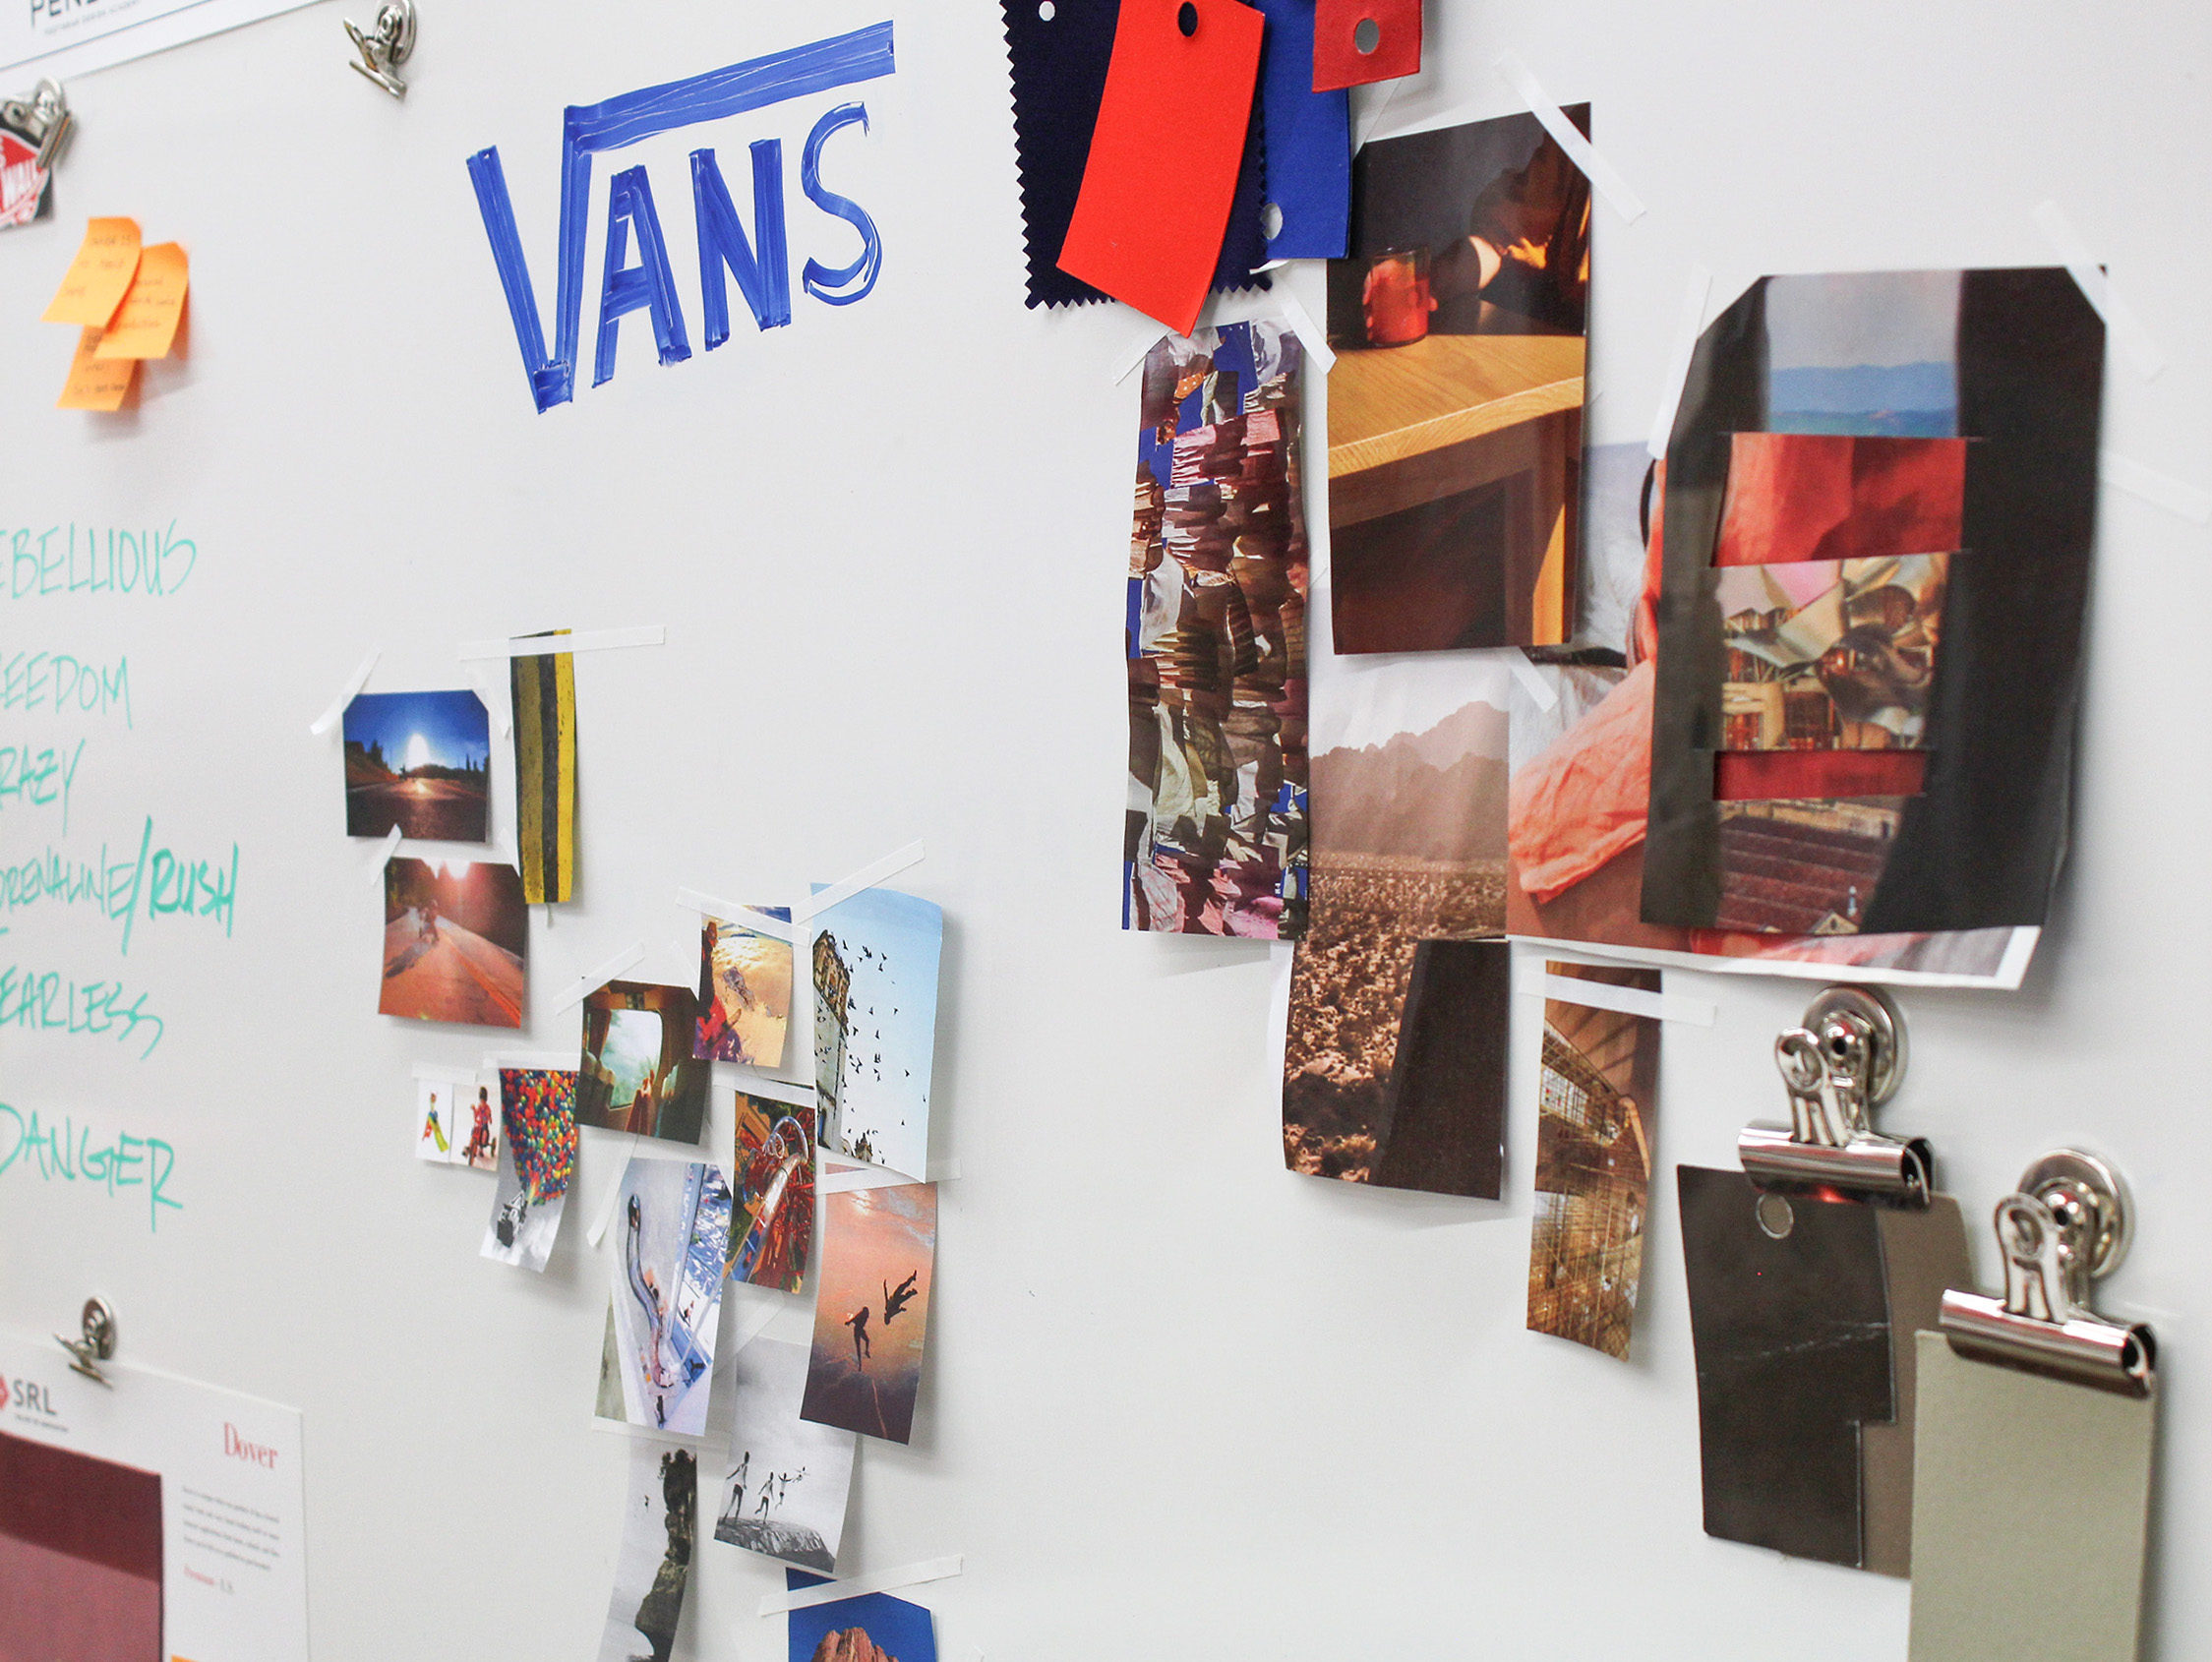 Team Vans place images that showcases their brands identity